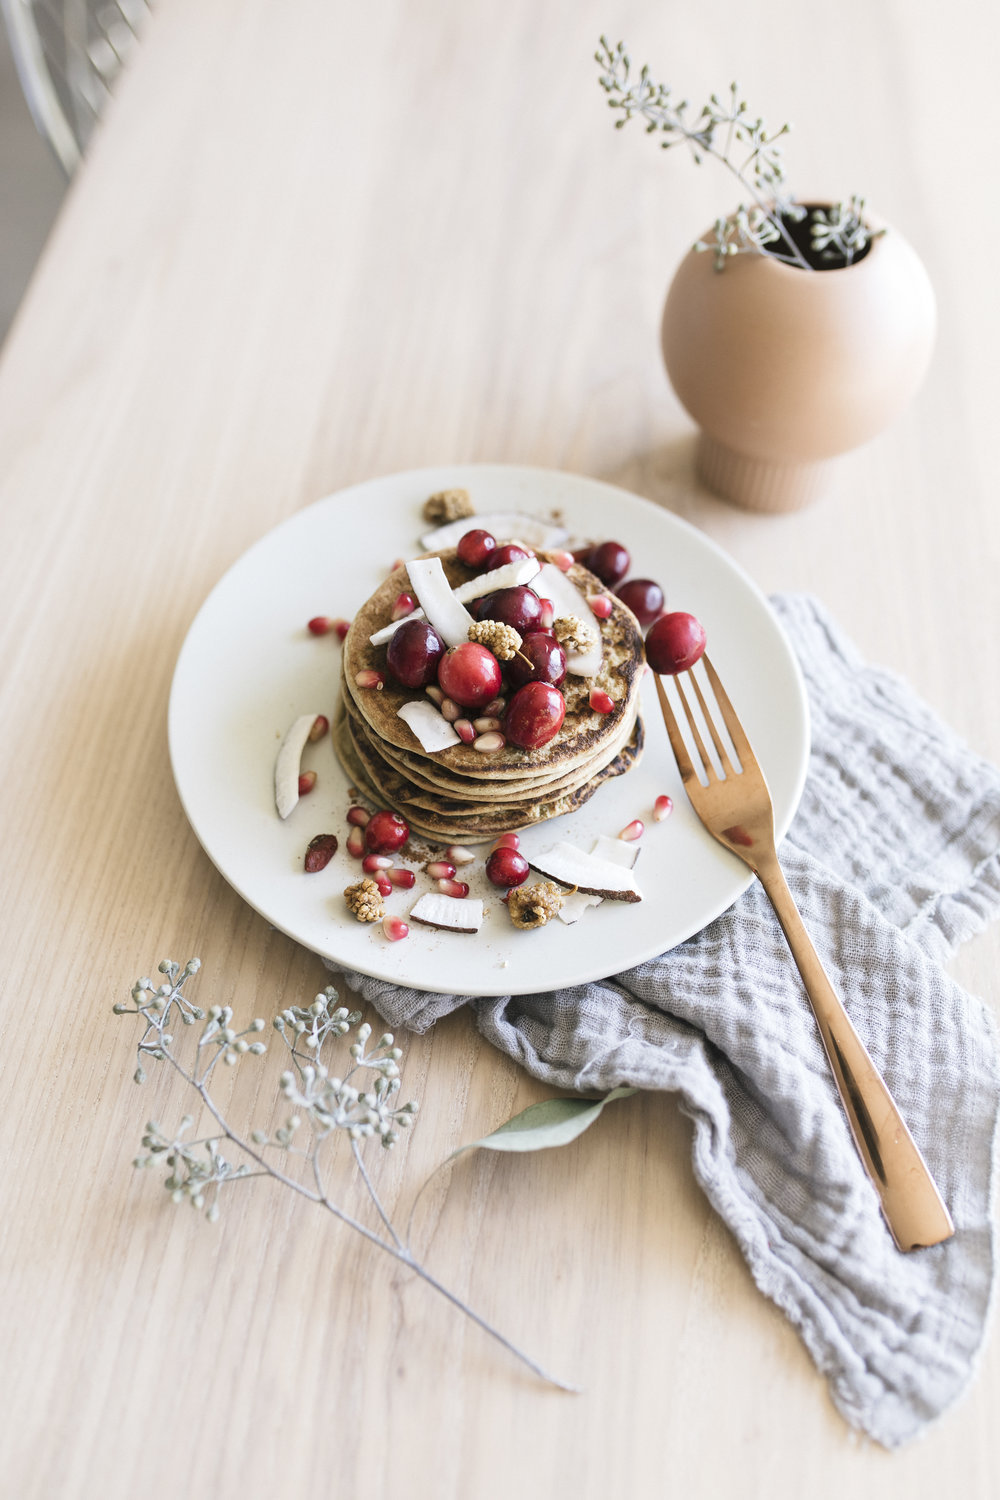 There pancakes are easy and stress free to whip up in the morning and bring a little holiday cheer into your healthy breakfast